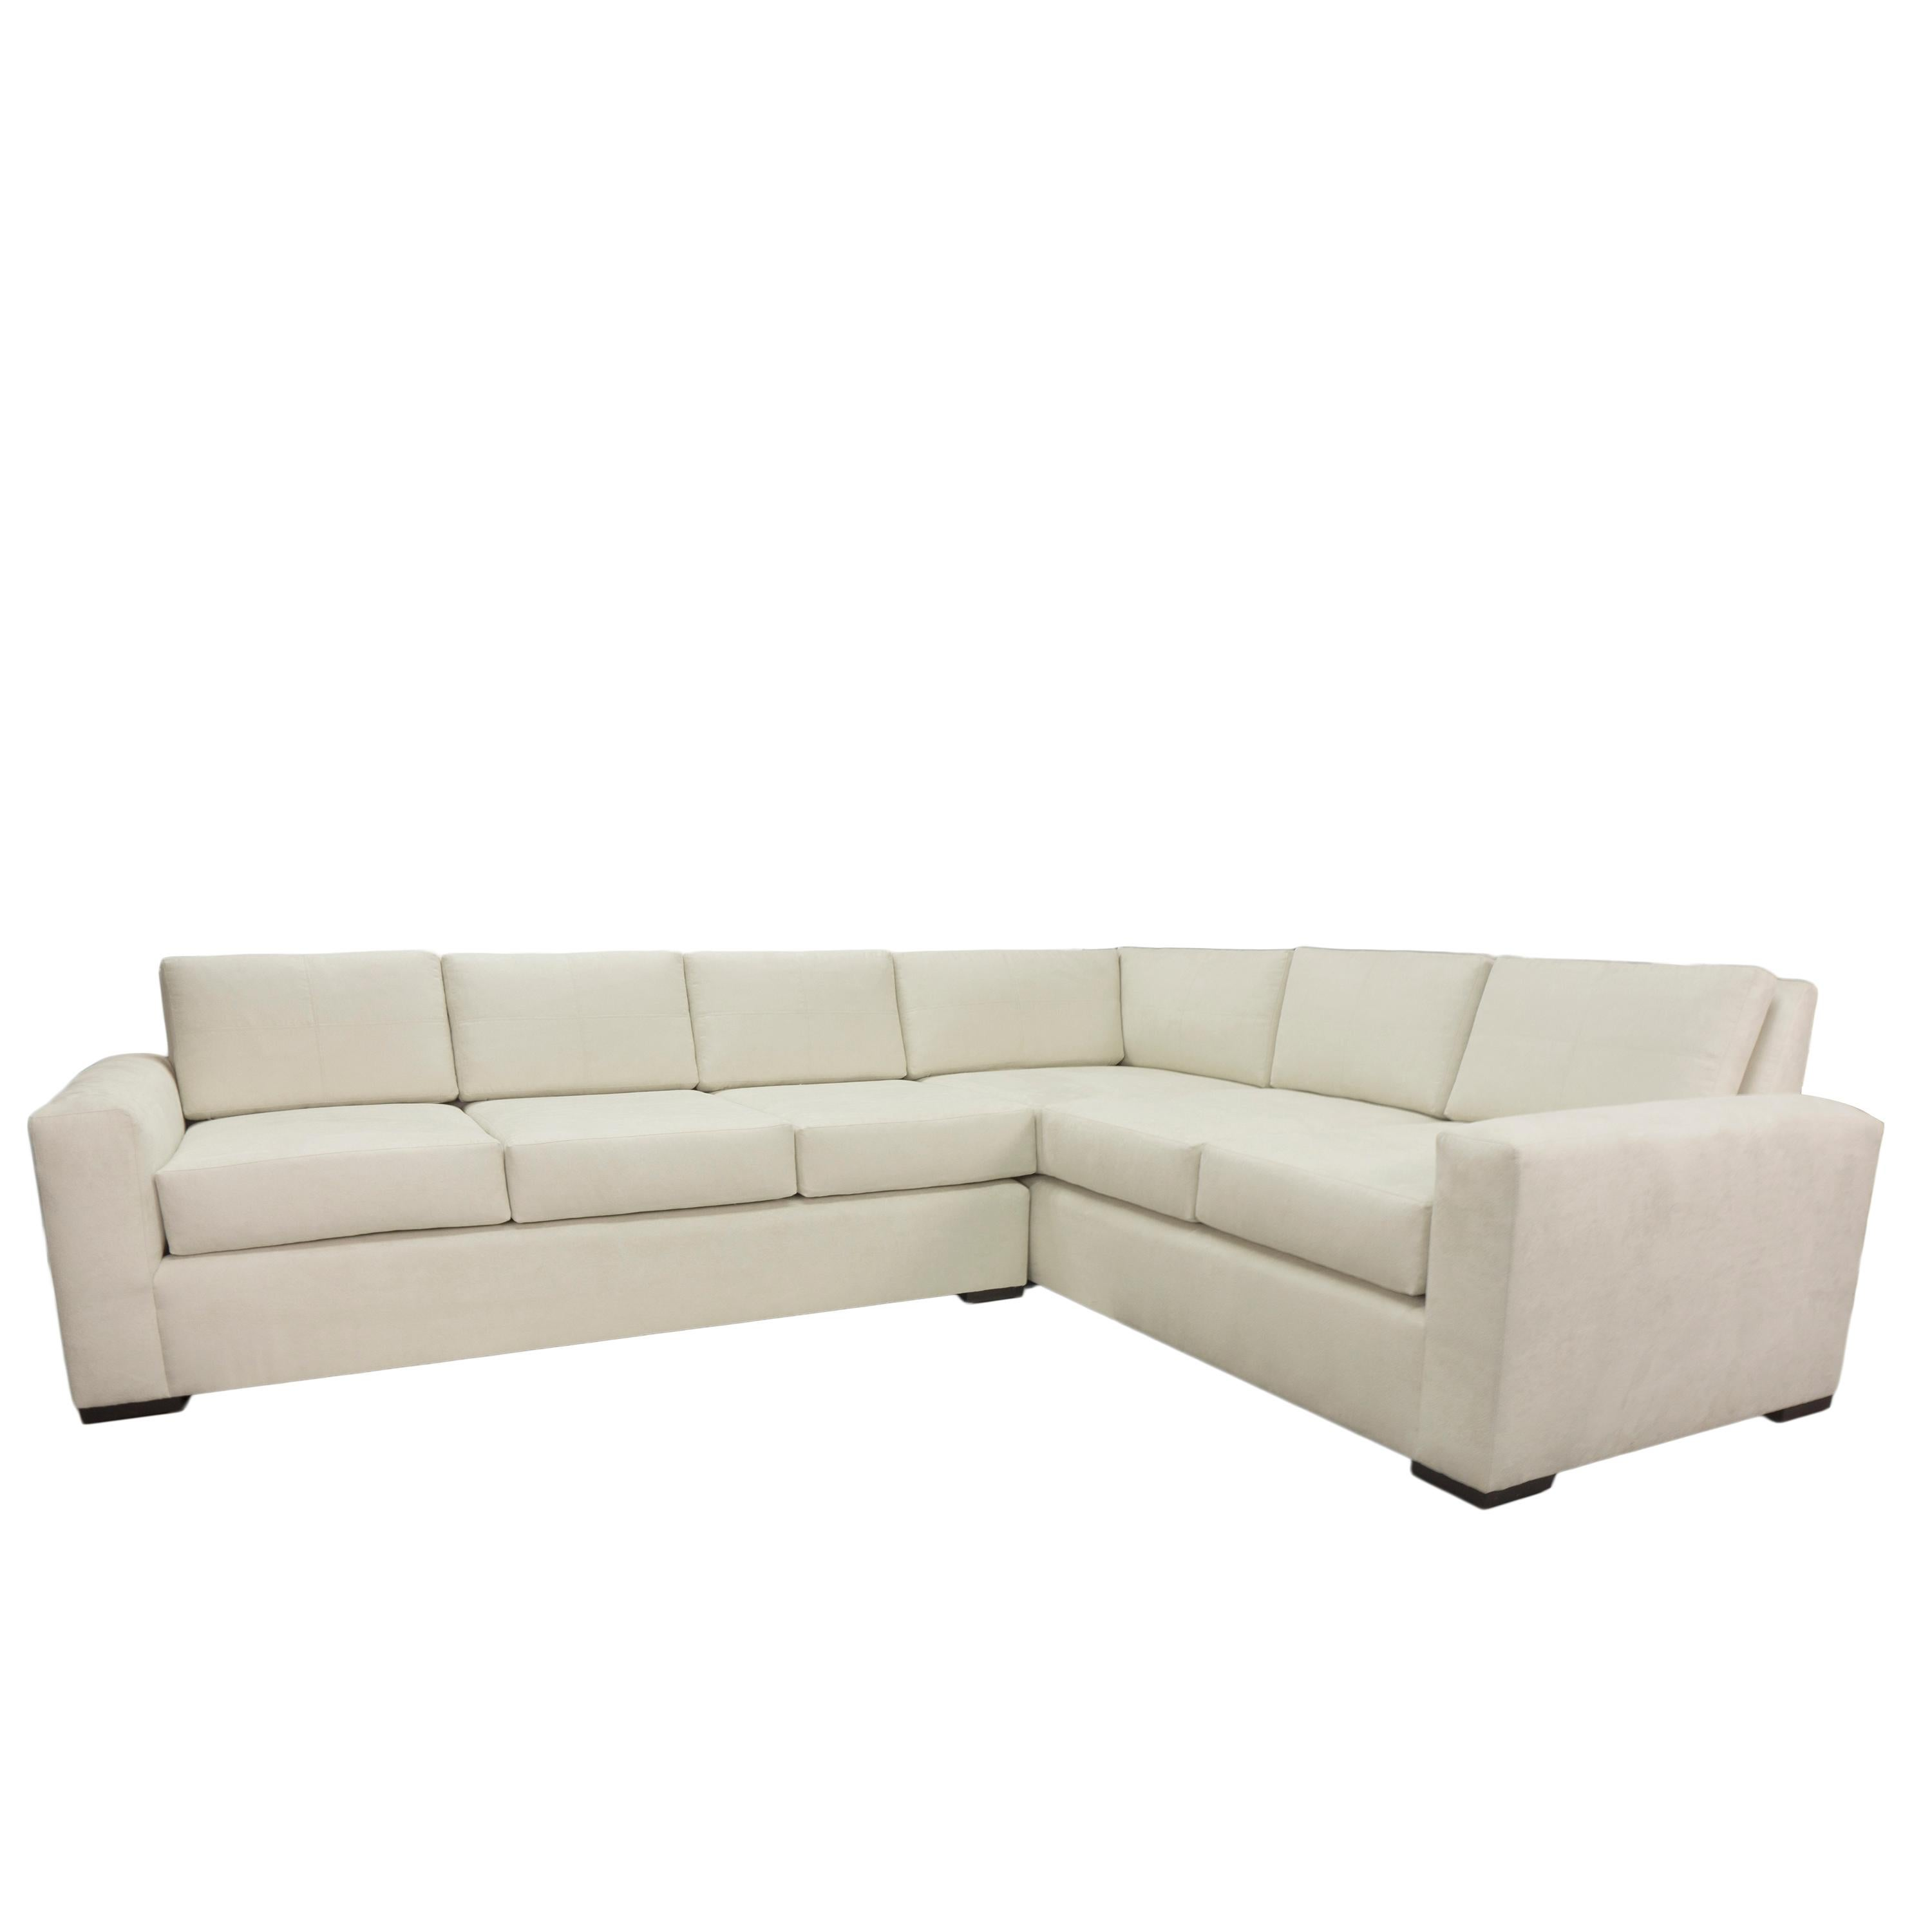 Vintage Modern L Shape Sectional Sofa For Sale at 1stdibs